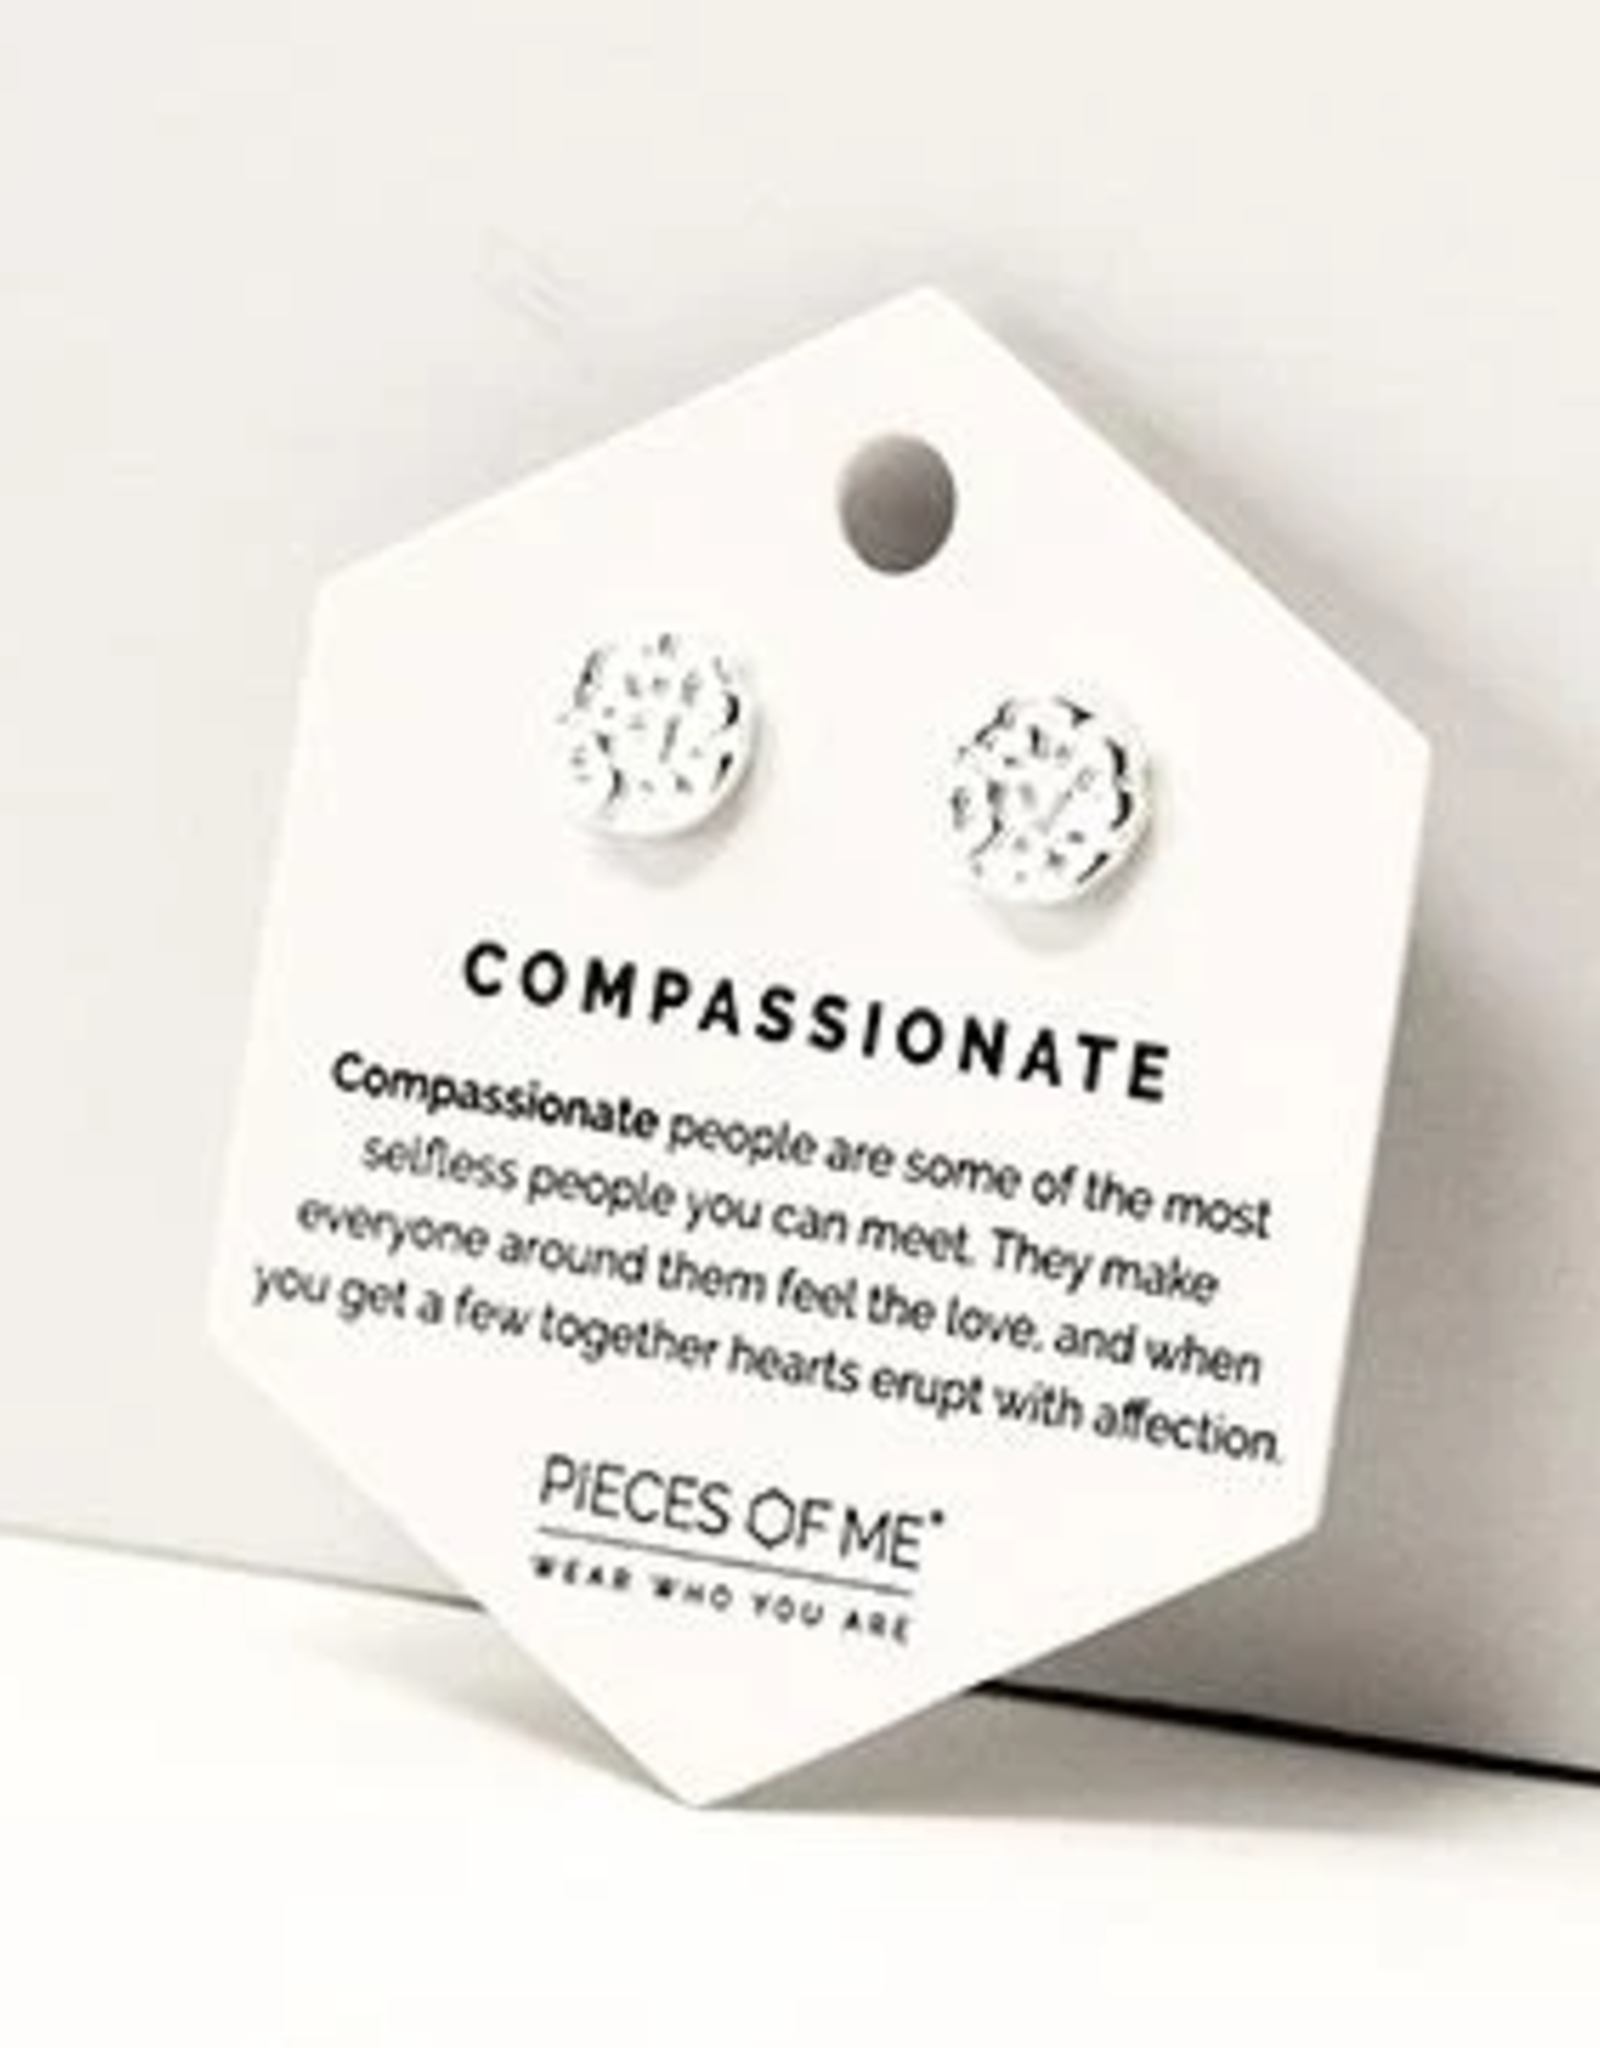 Pieces of Me Compassionate Earrings - Silver